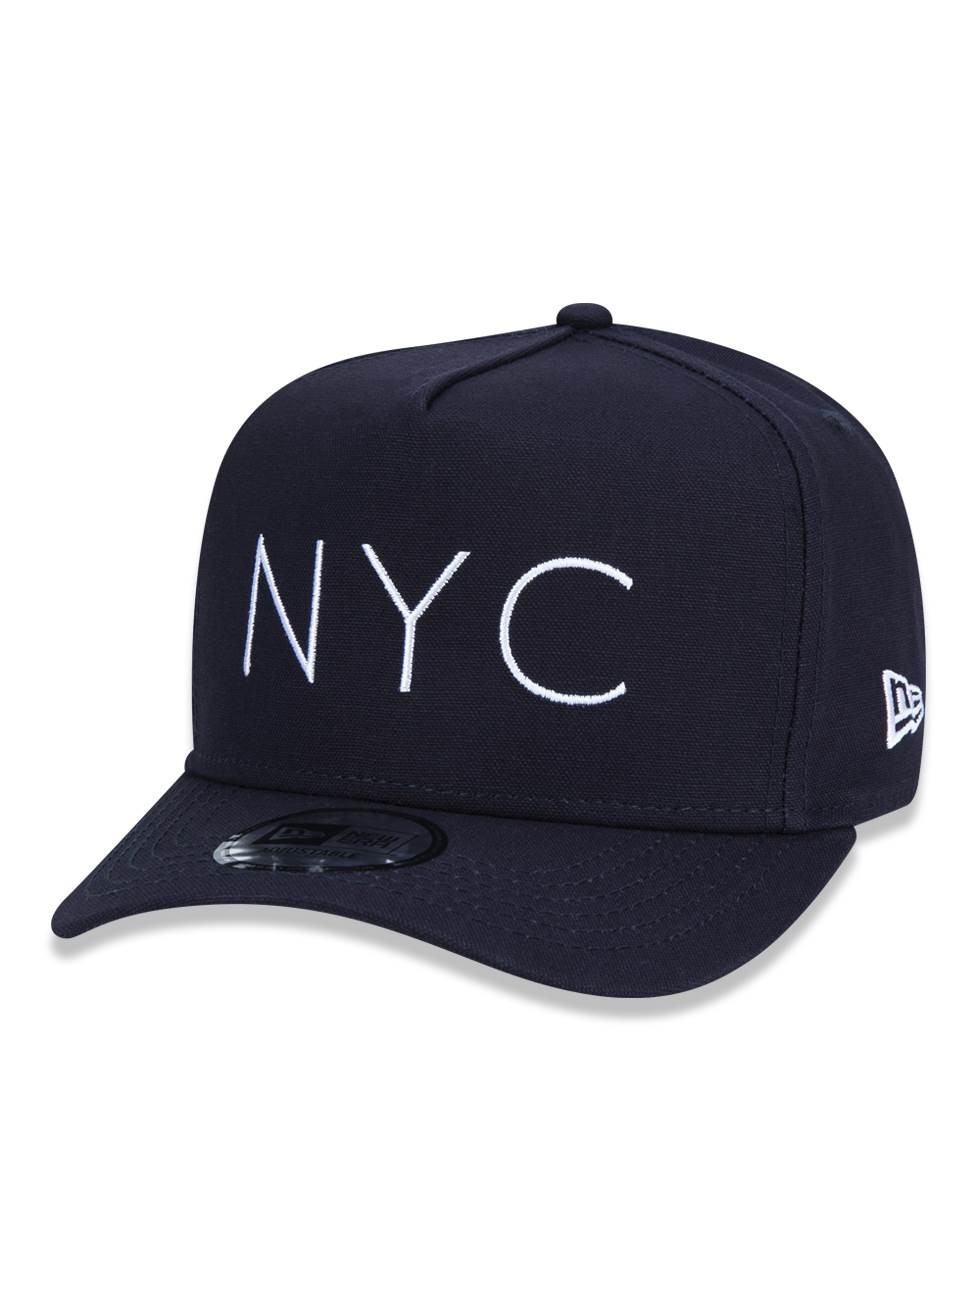 BONÉ NEW ERA NEW YORK YANKEES NYC TAN MARINHO - NEV17BON398